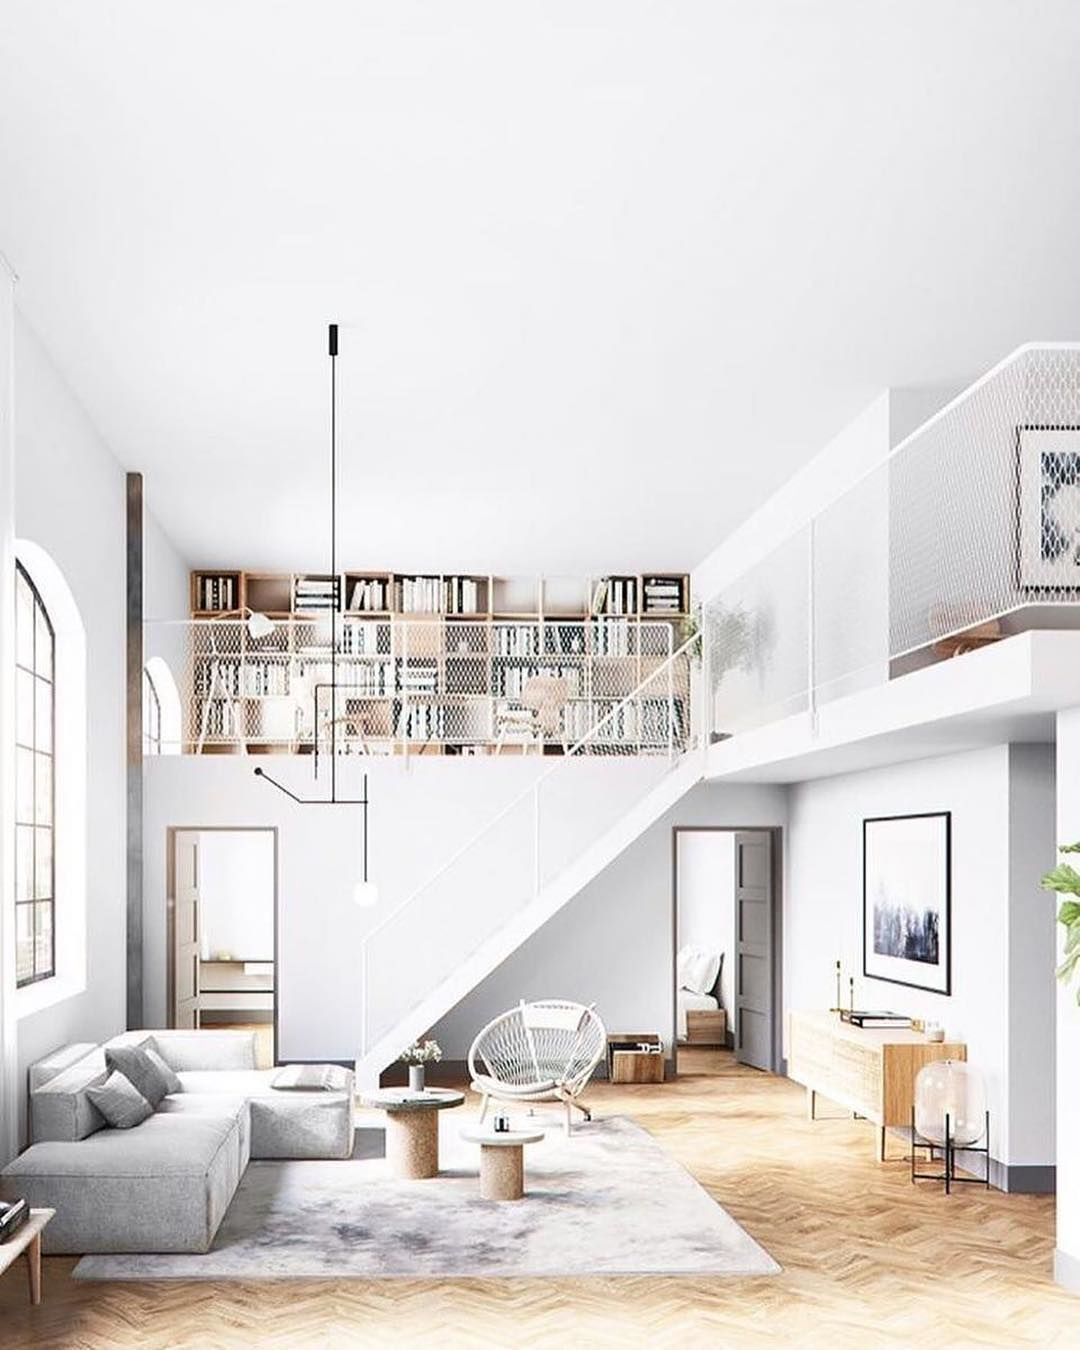 minimal interior design inspiration is  weekly showcase of some the most perfectly examples that we ve found around web also furnished house for sale vip block sqrd bed rooms bathroom rh pinterest